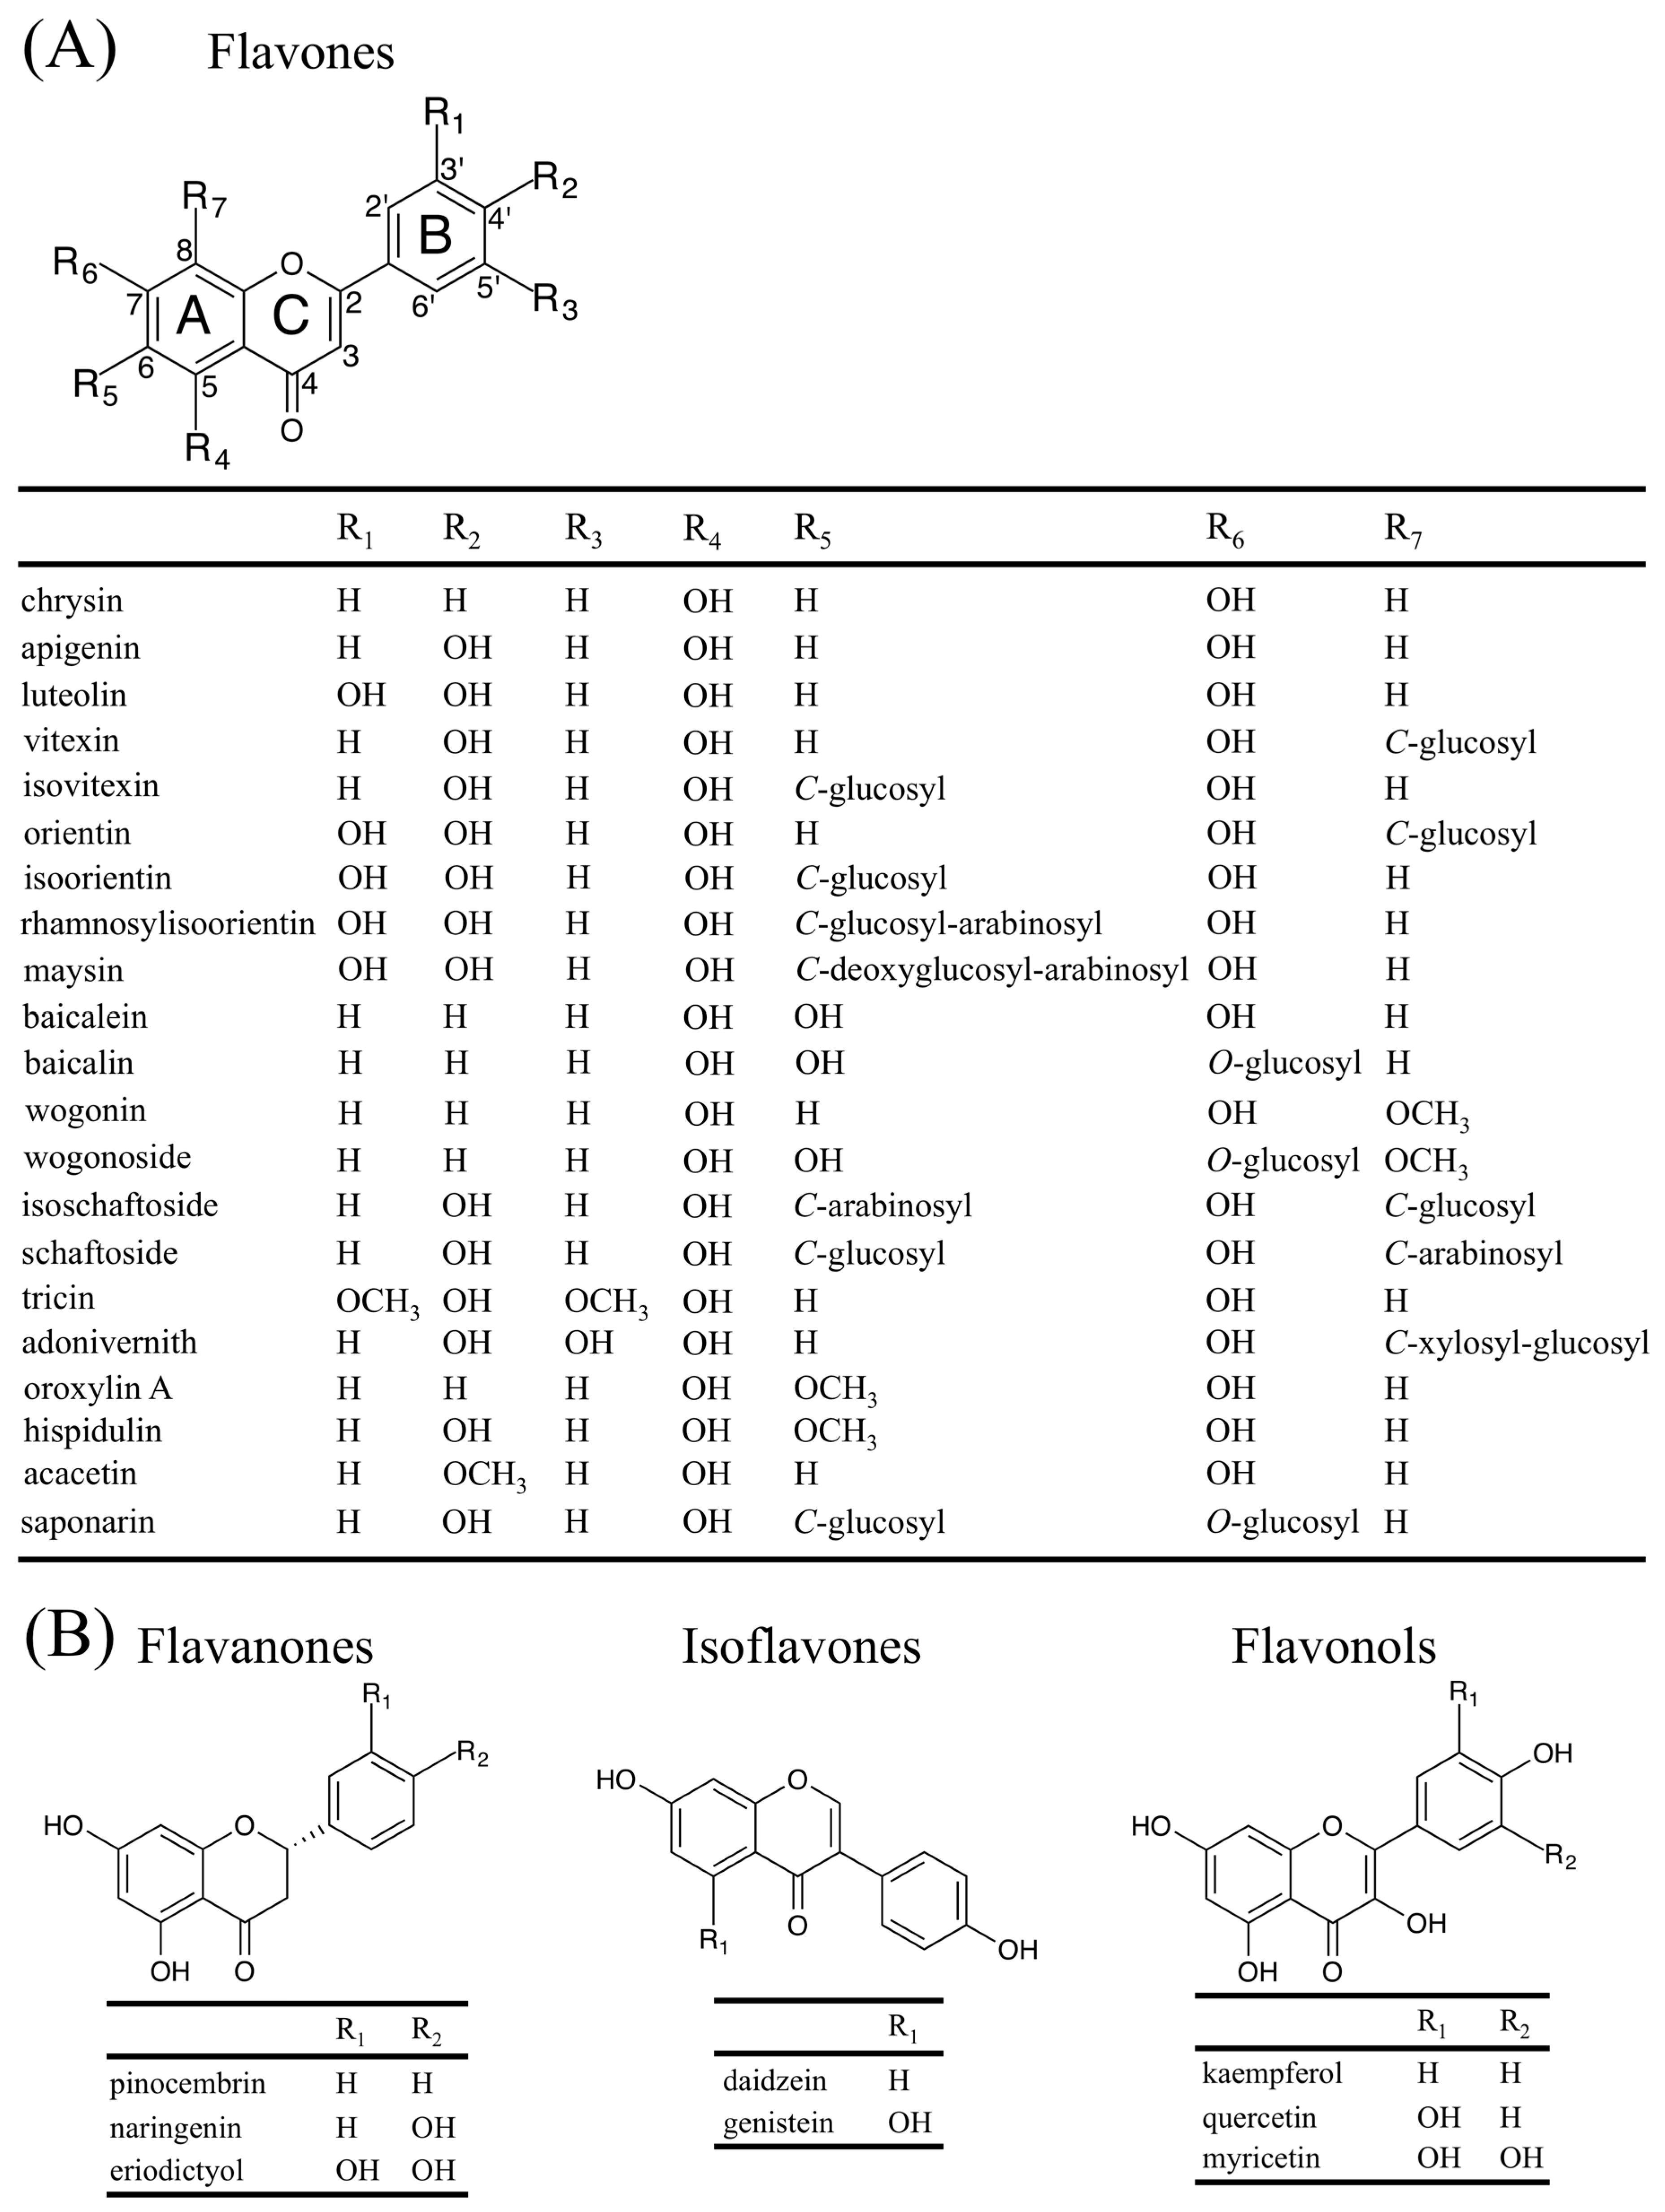 Plants | Free Full-Text | Flavones: From Biosynthesis to